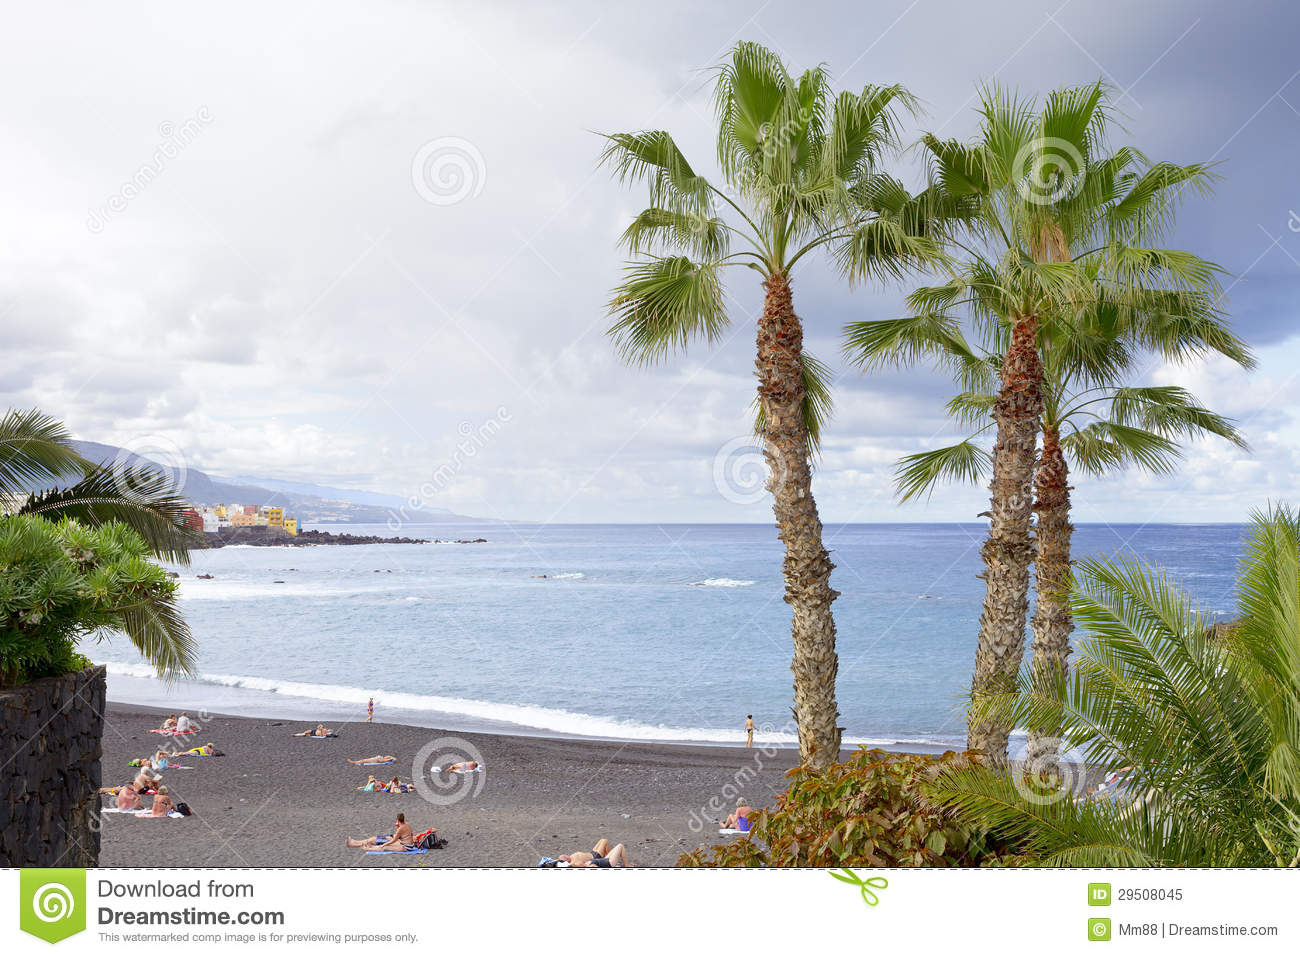 Playa de jardin royalty free stock photo image 29508045 for Aparthotel jardin de playa